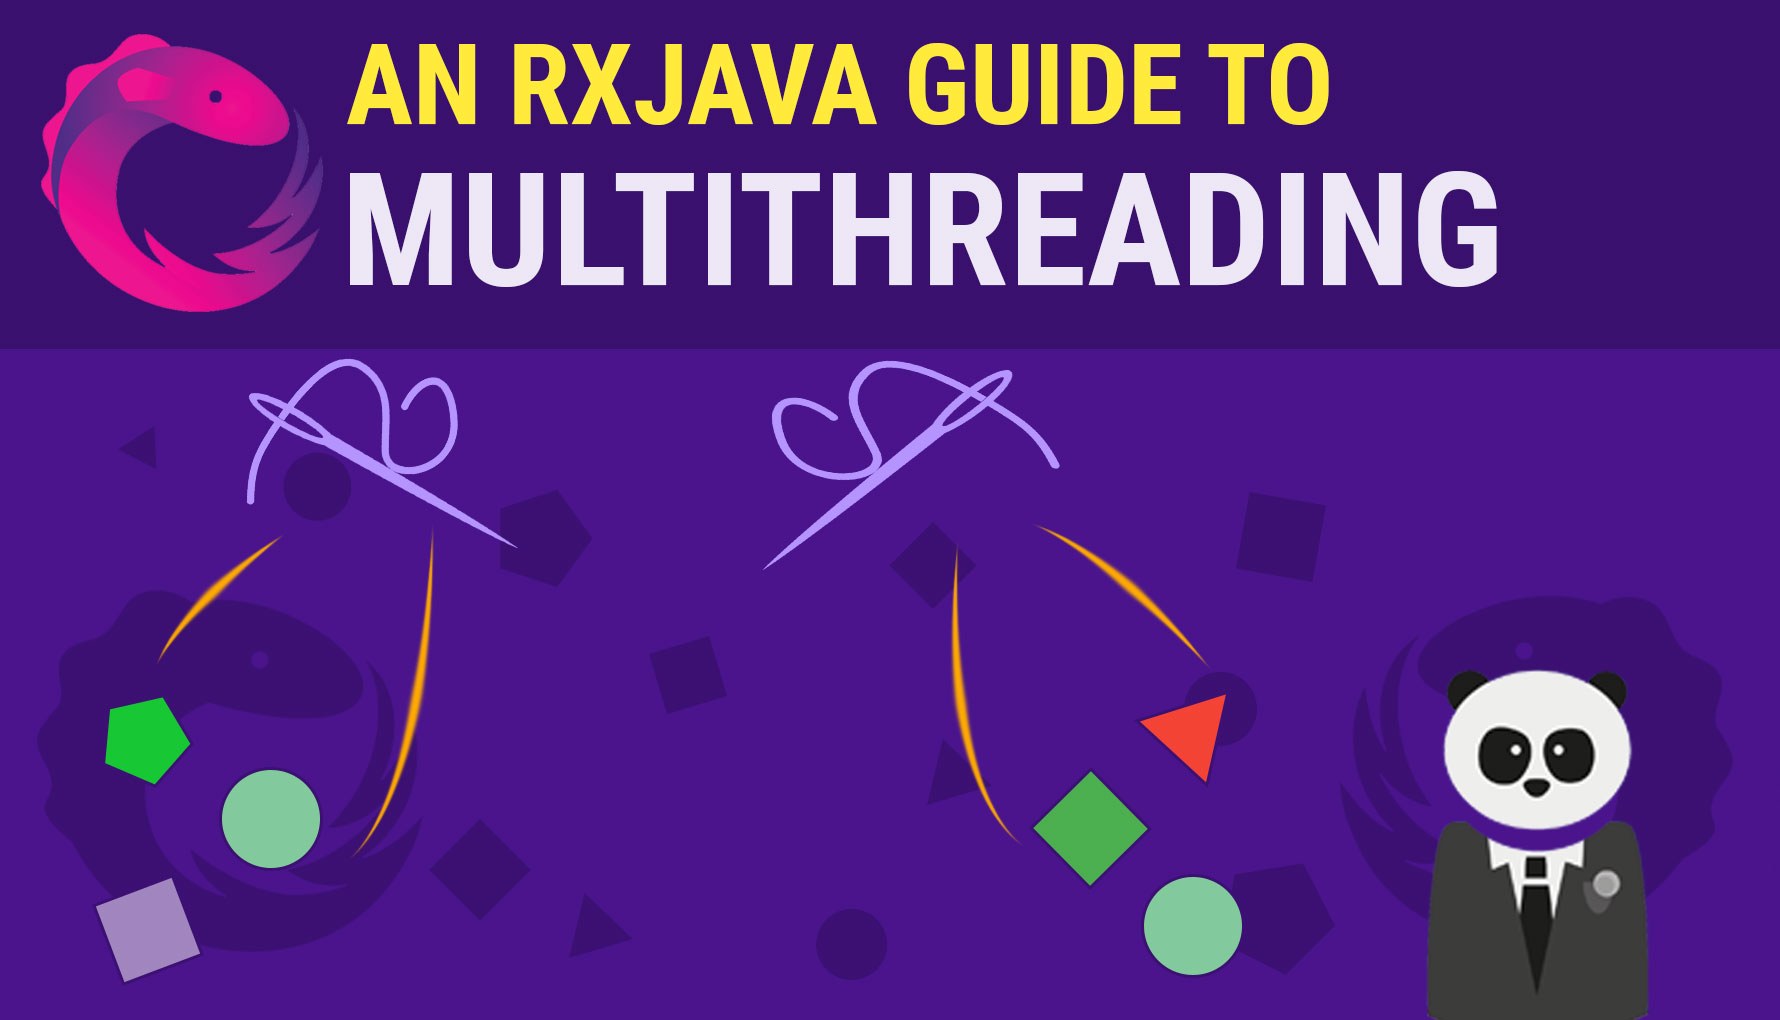 A Guide to Multithreading in RxJava